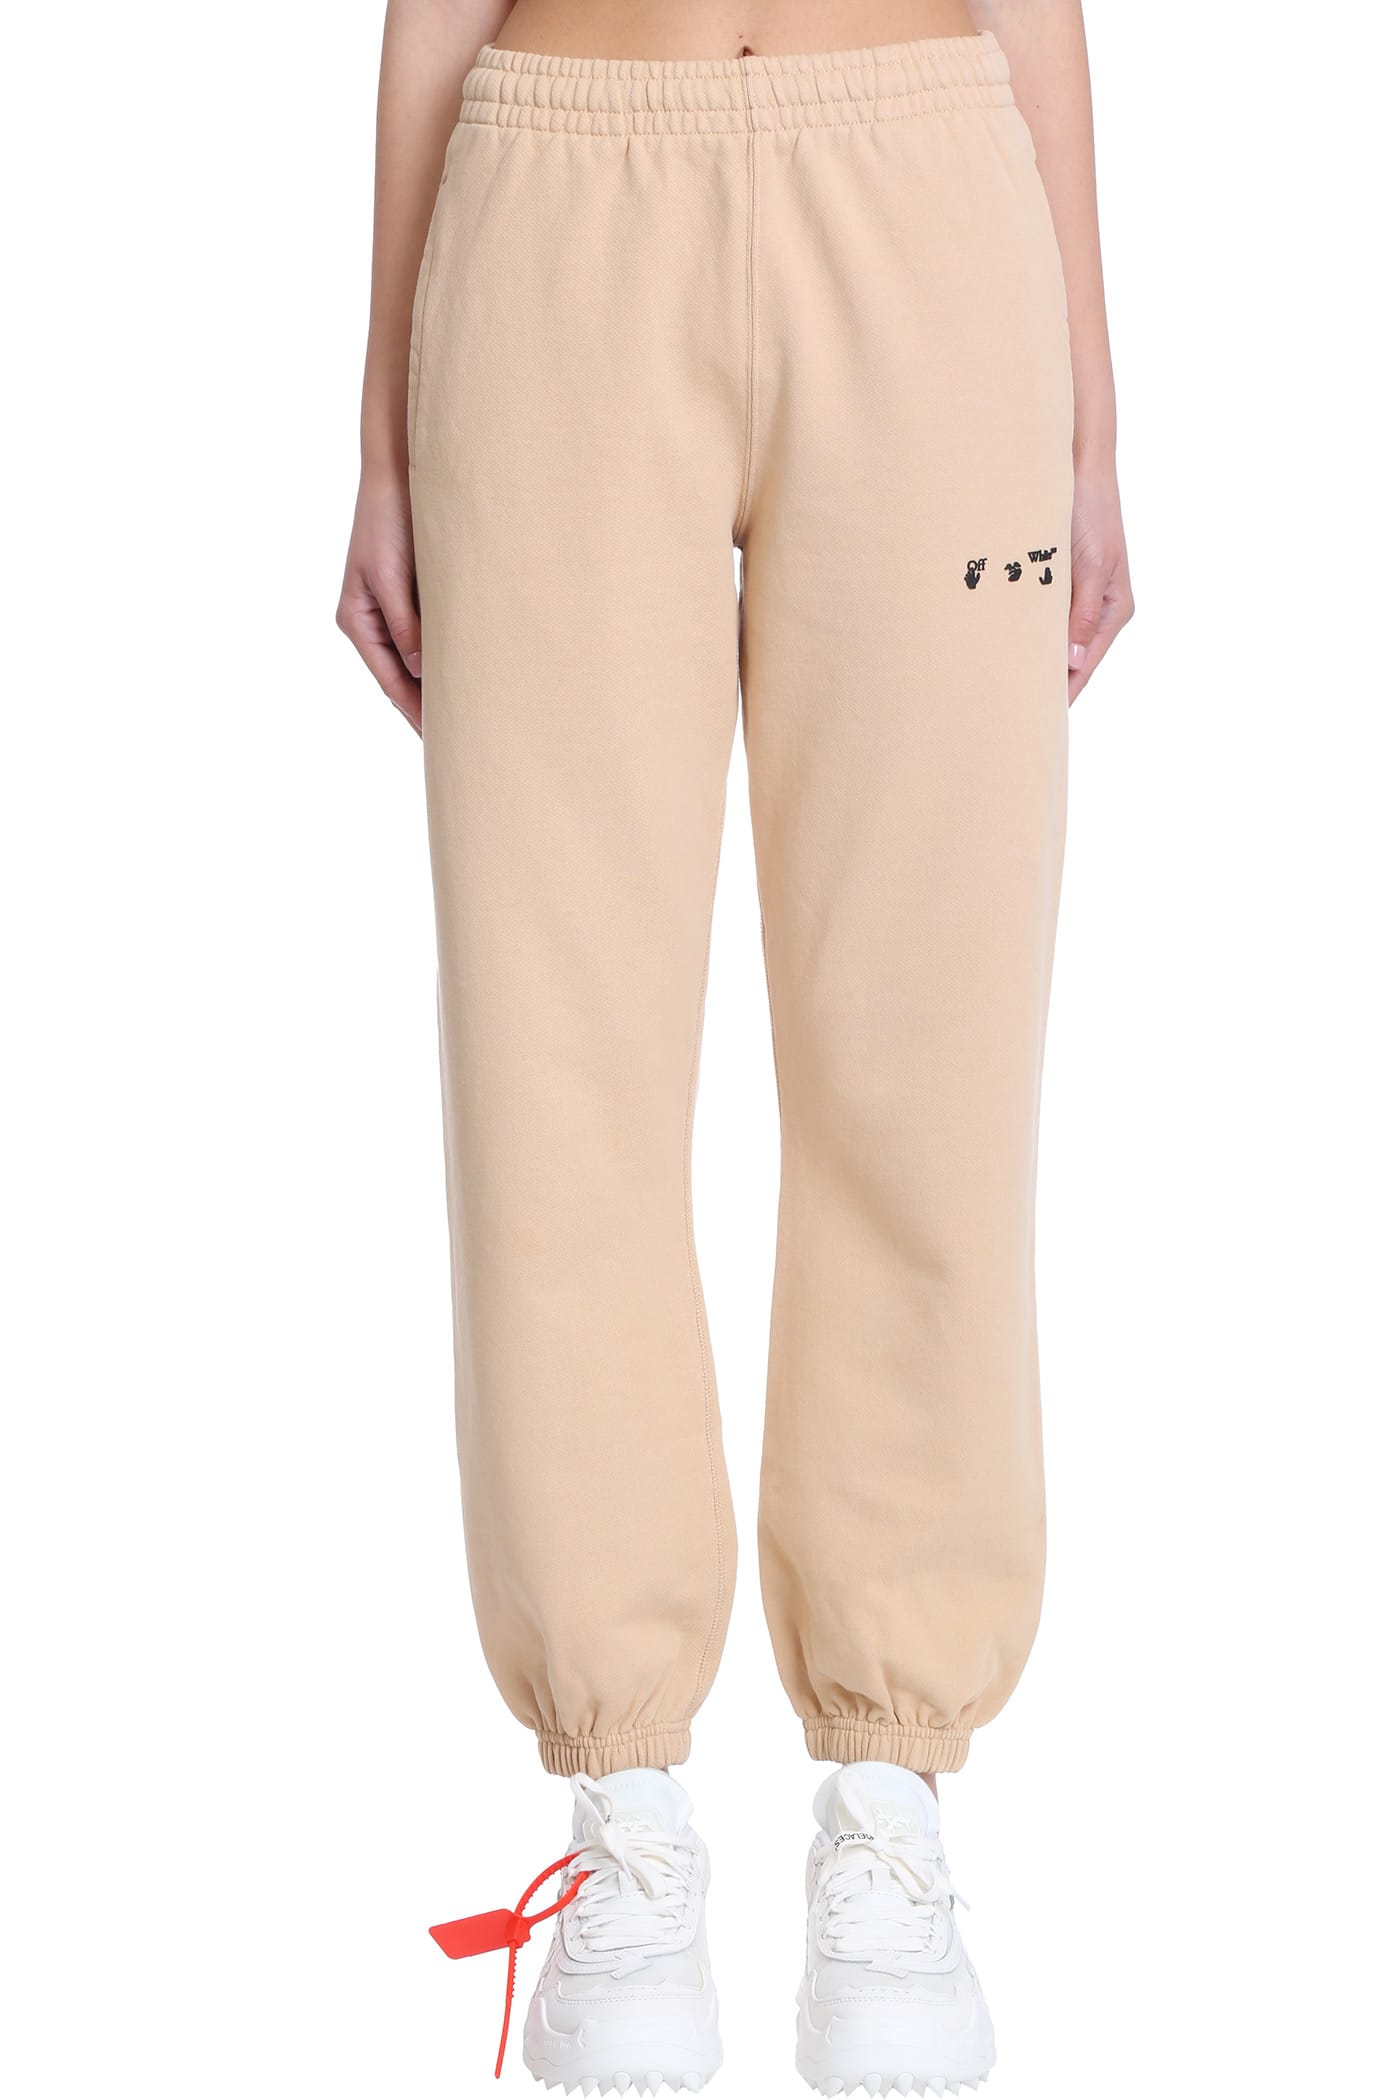 Off-White Clothing PANTS IN BEIGE COTTON